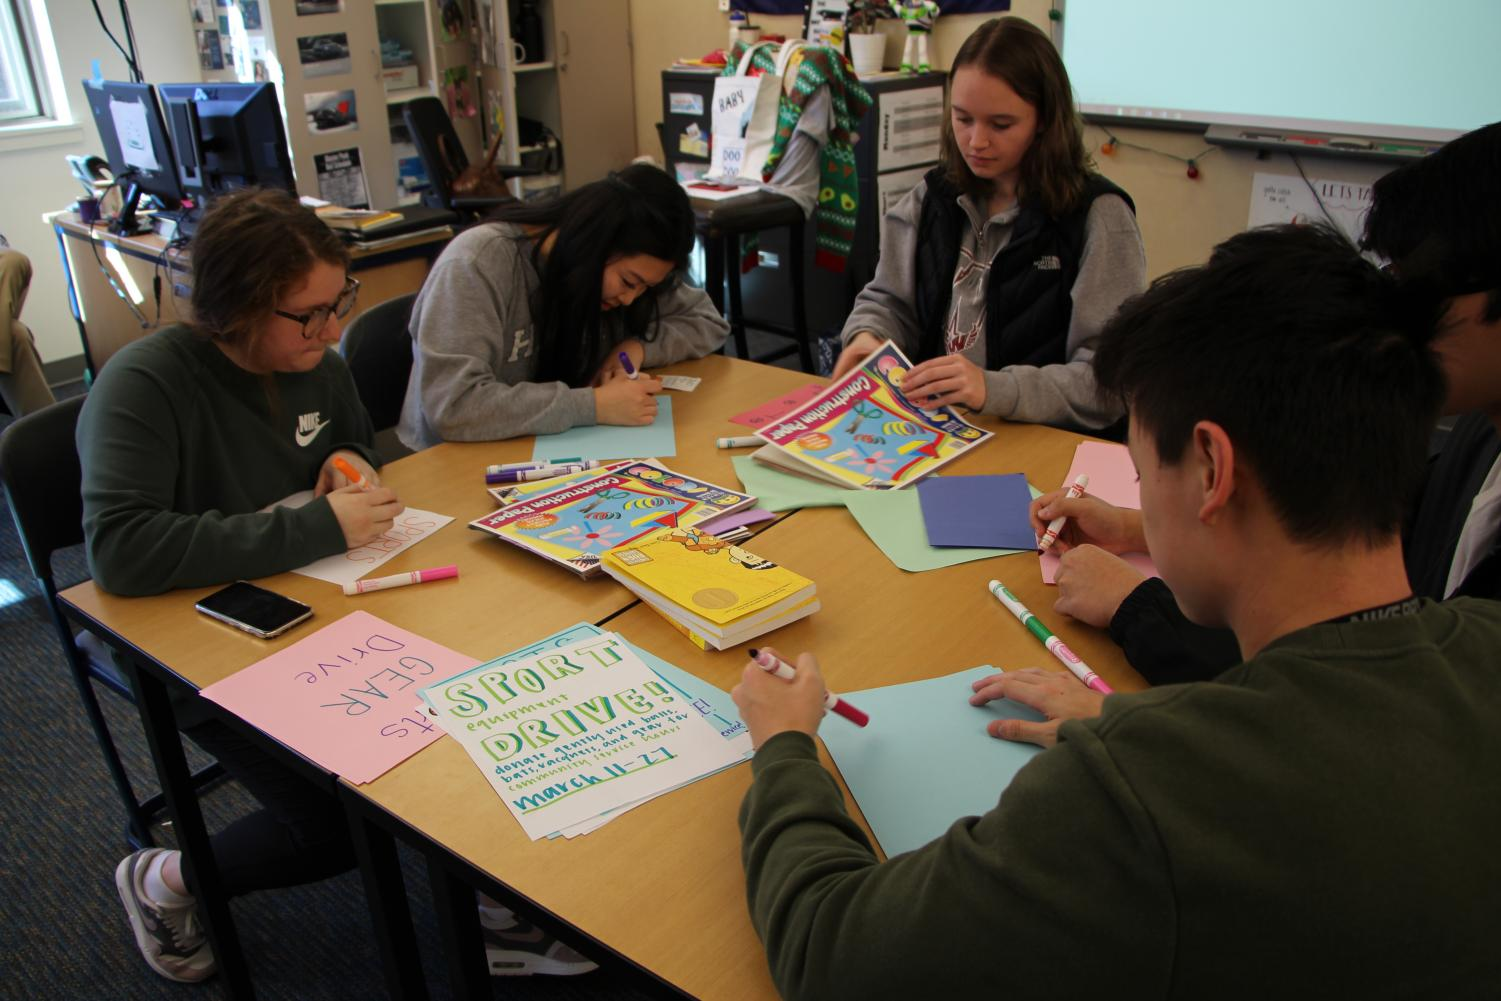 Students working on posters for the Key club sports equipment drive